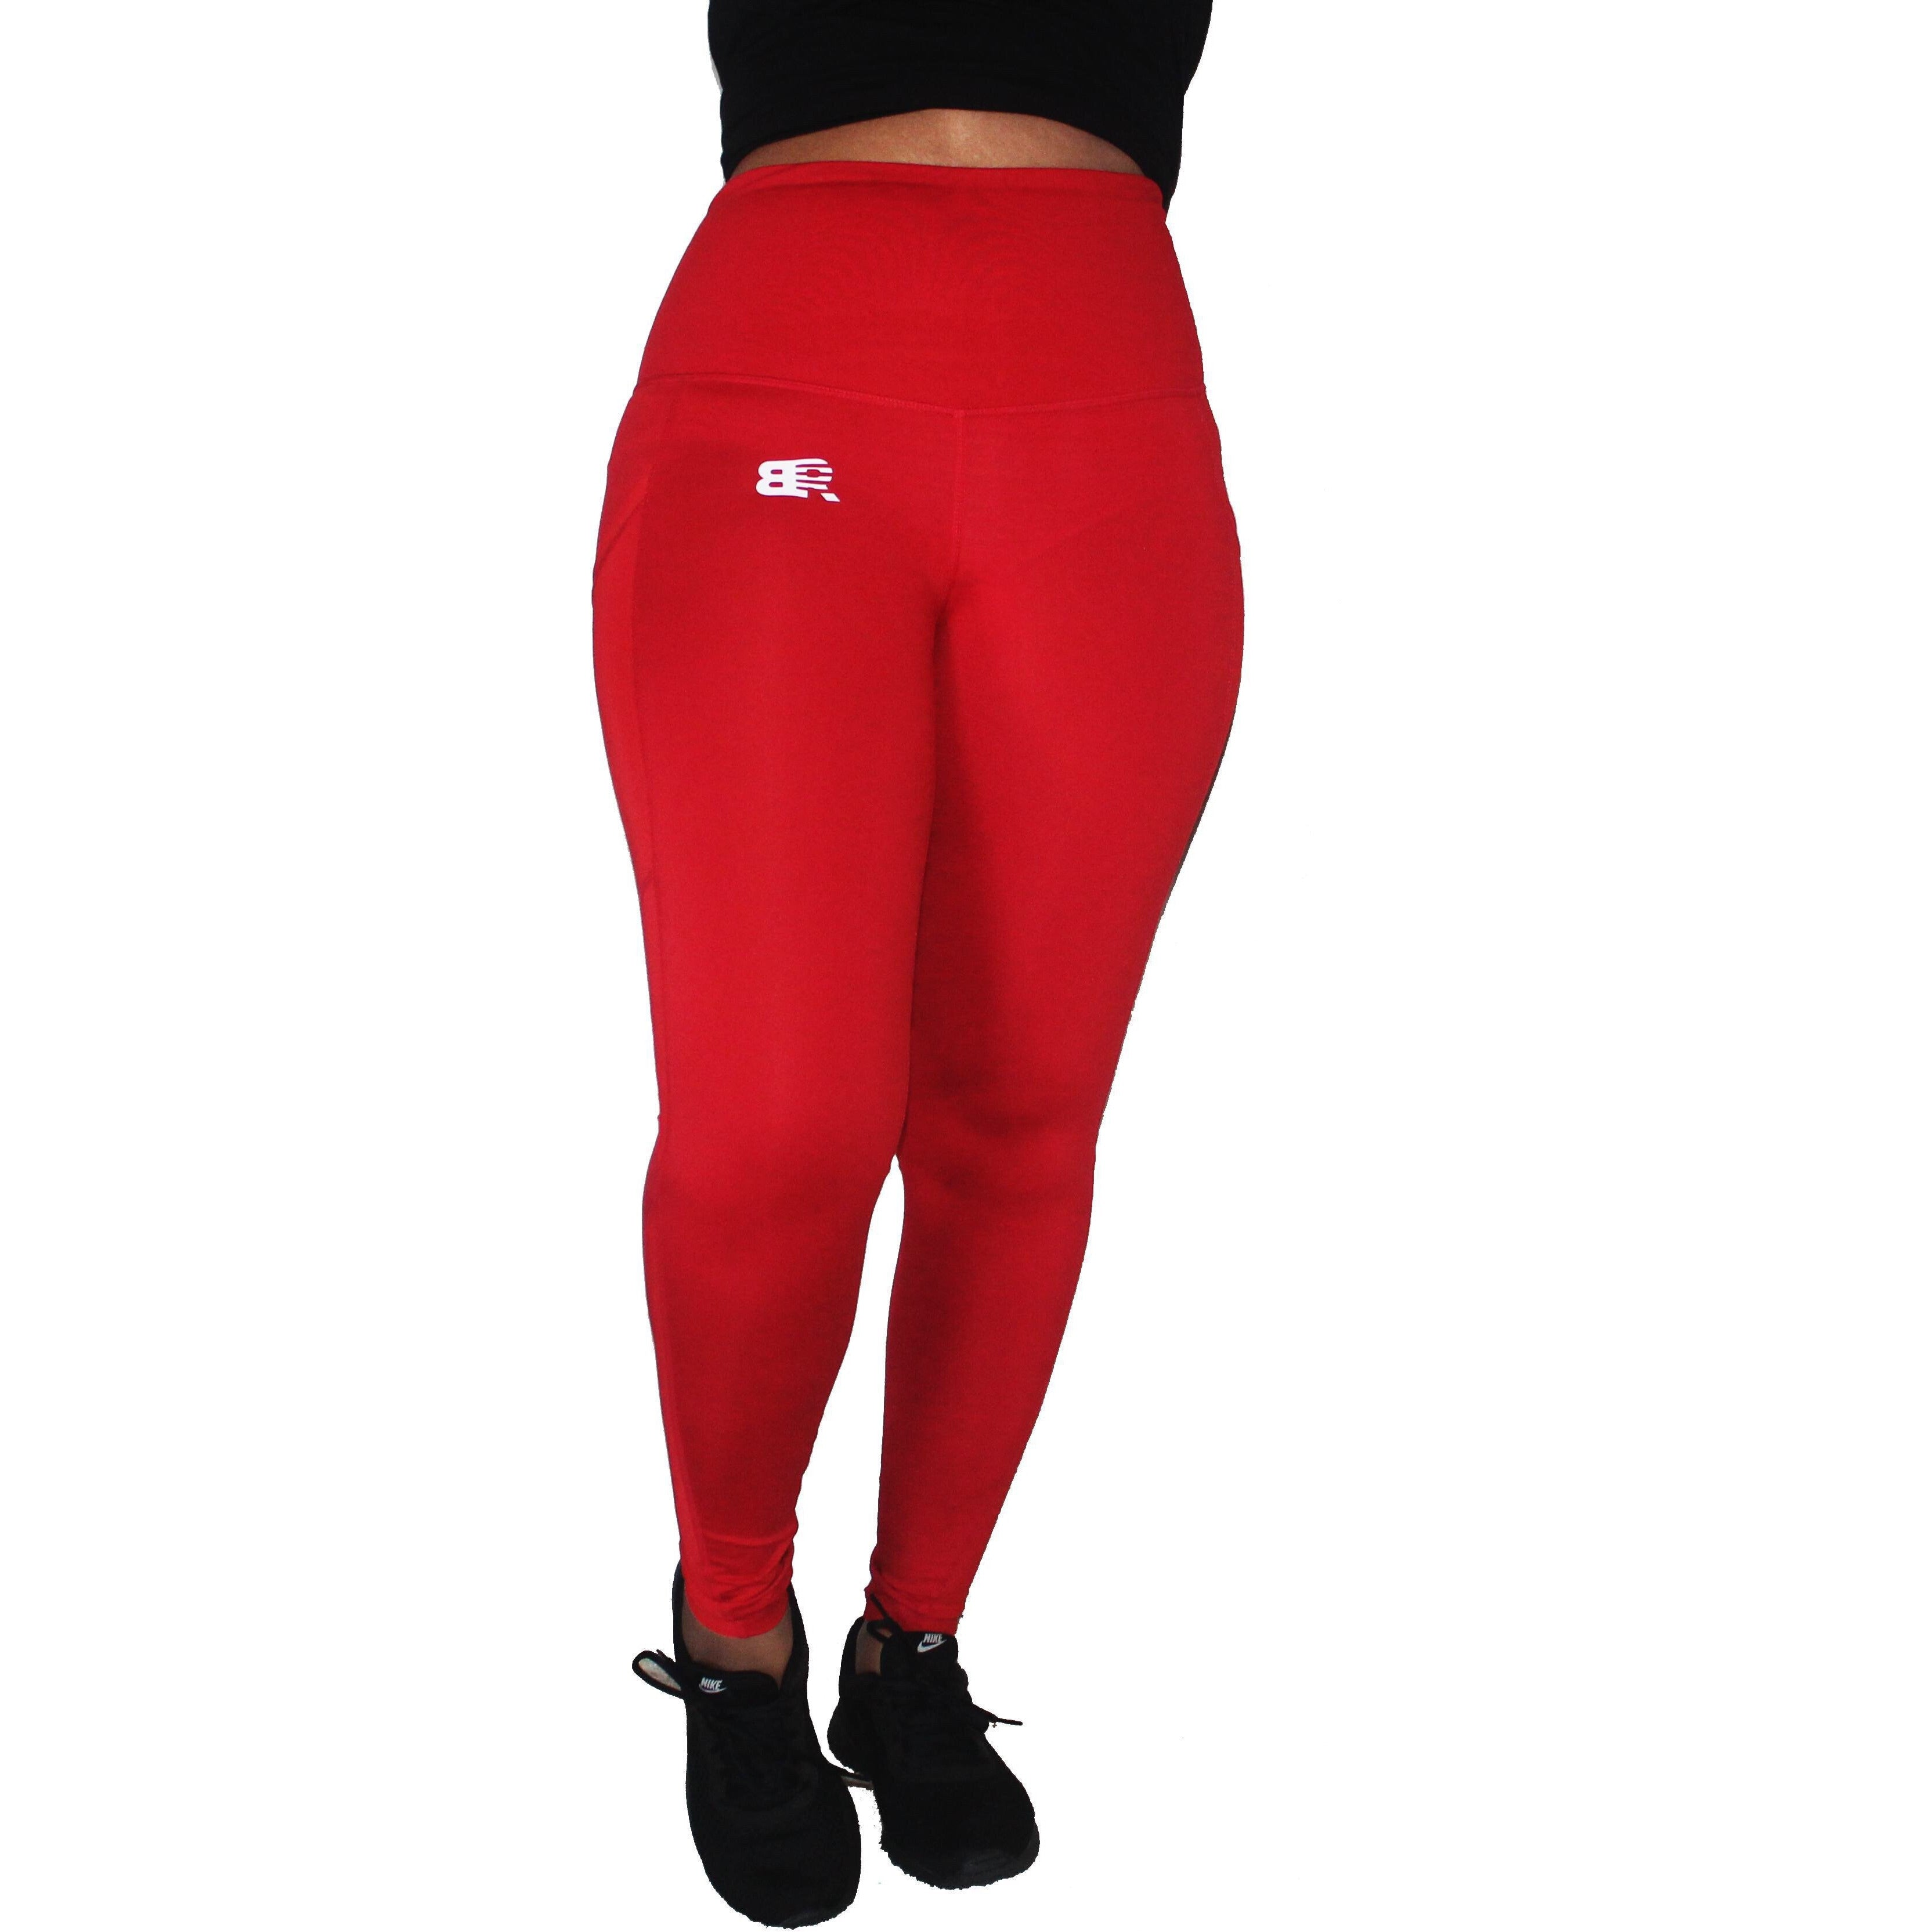 HIGH-WAIST LEGGINGS WITH MESH POCKET & BOW - RED